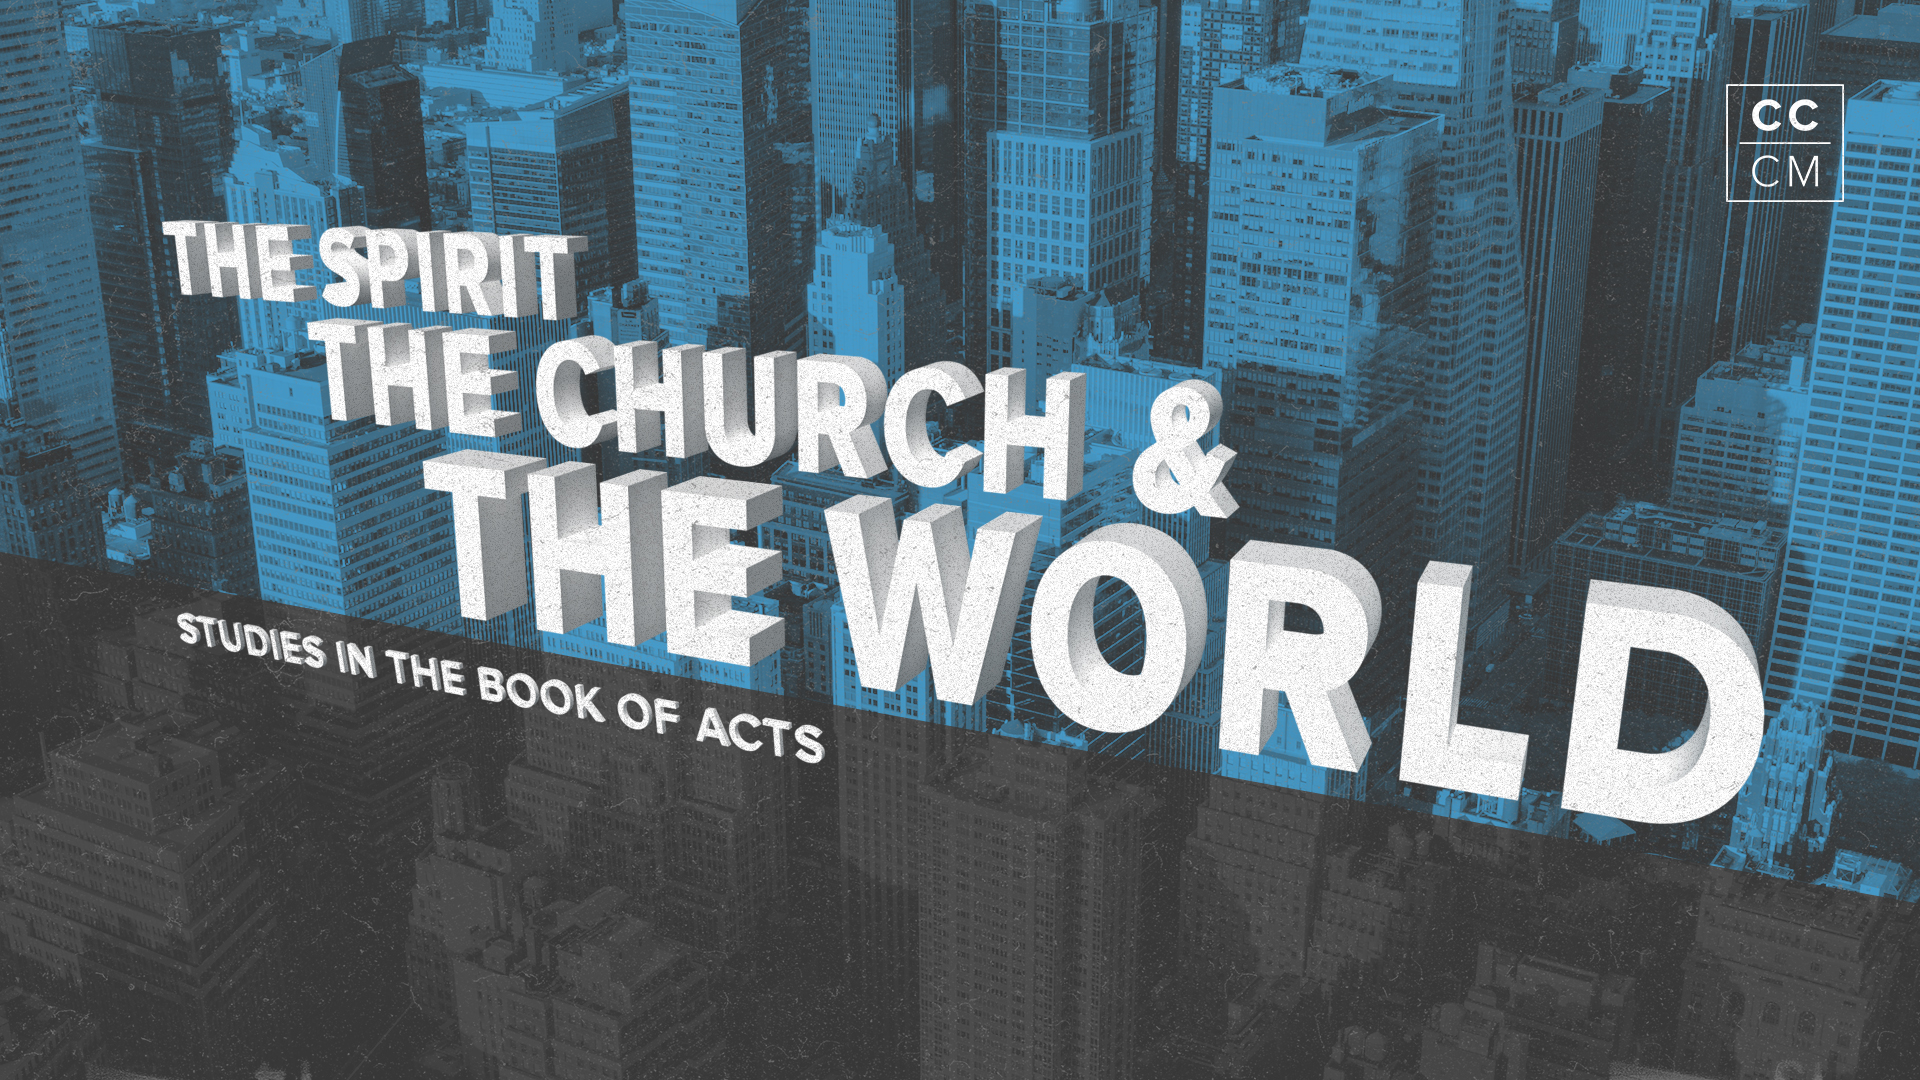 The Spirit The Church The World 1920x1080